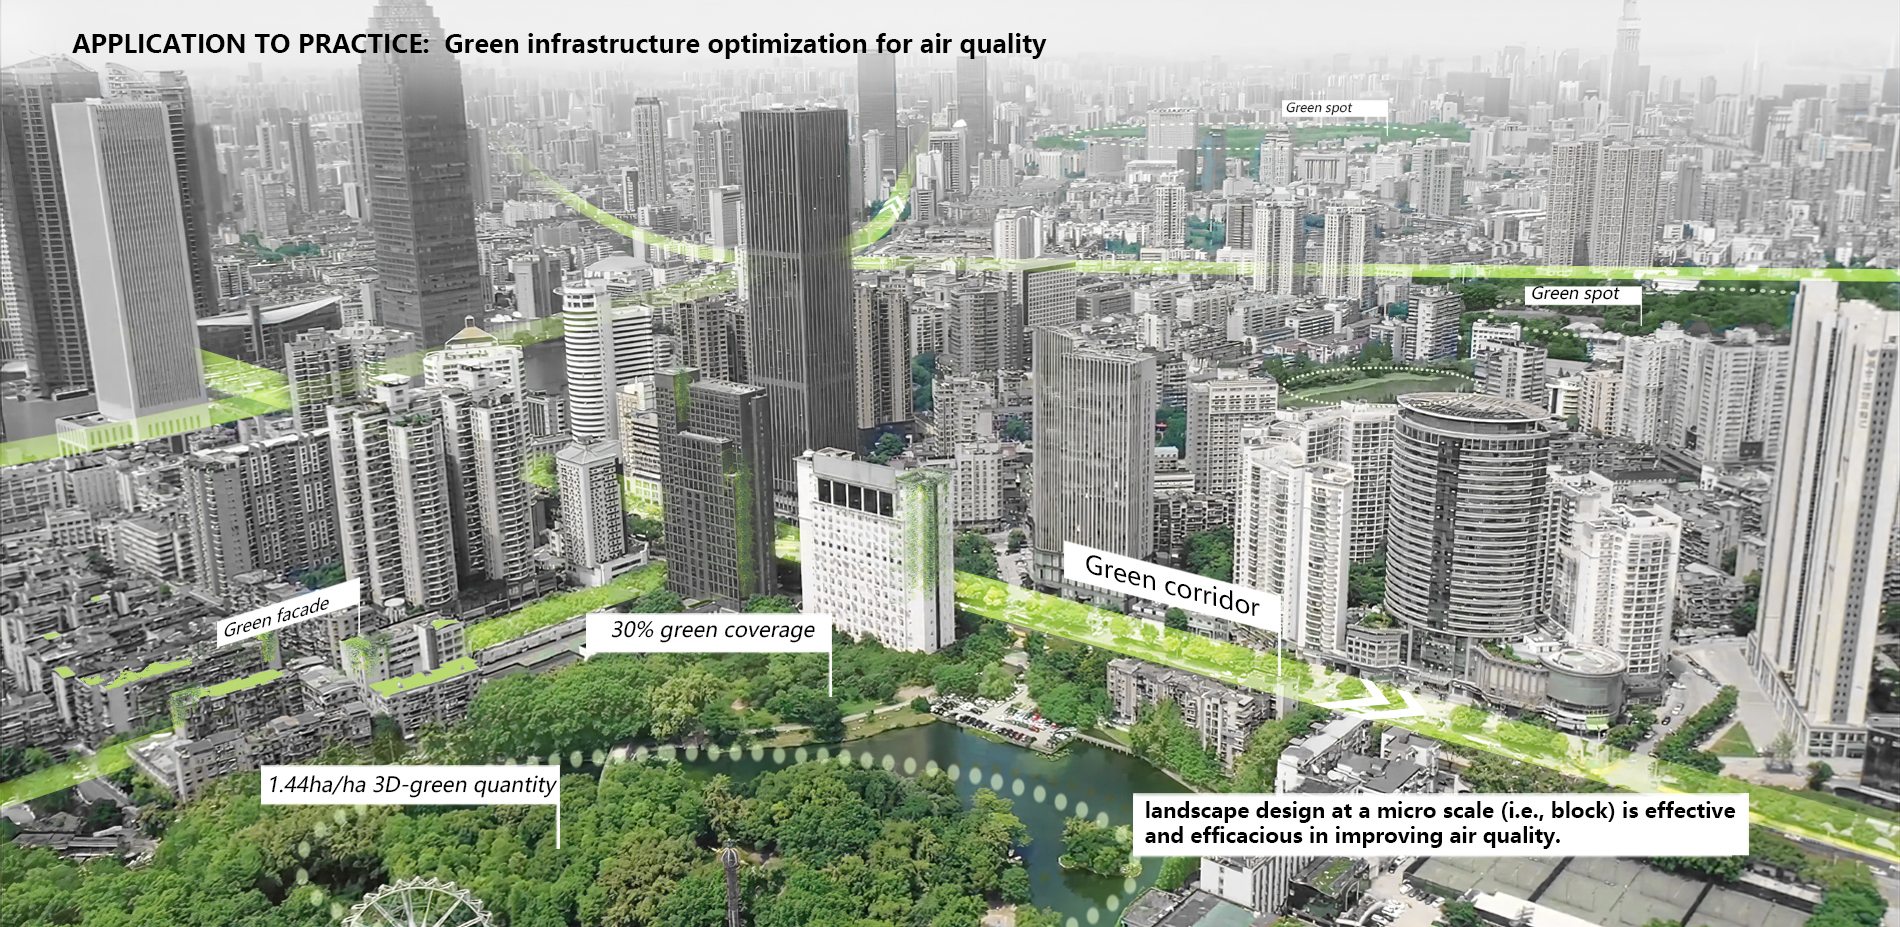 Application to practical: Green infrastructure optimization for air quality